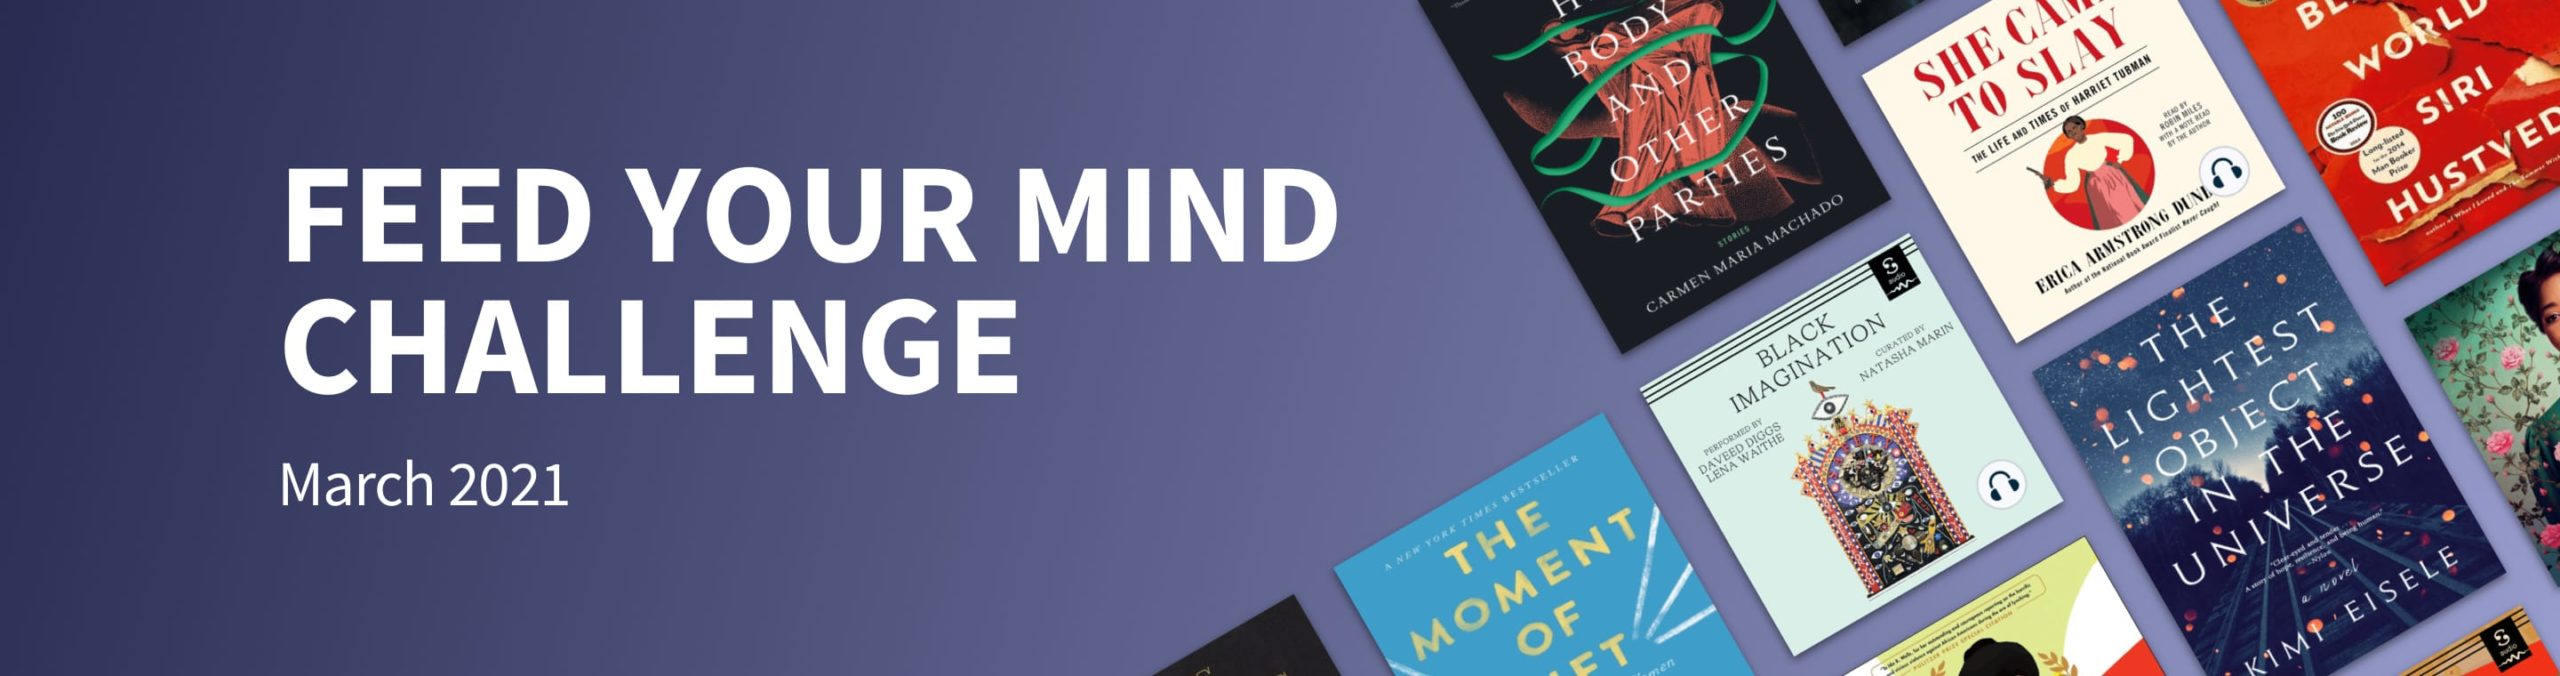 Scribd's March Feed Your Mind Challenge